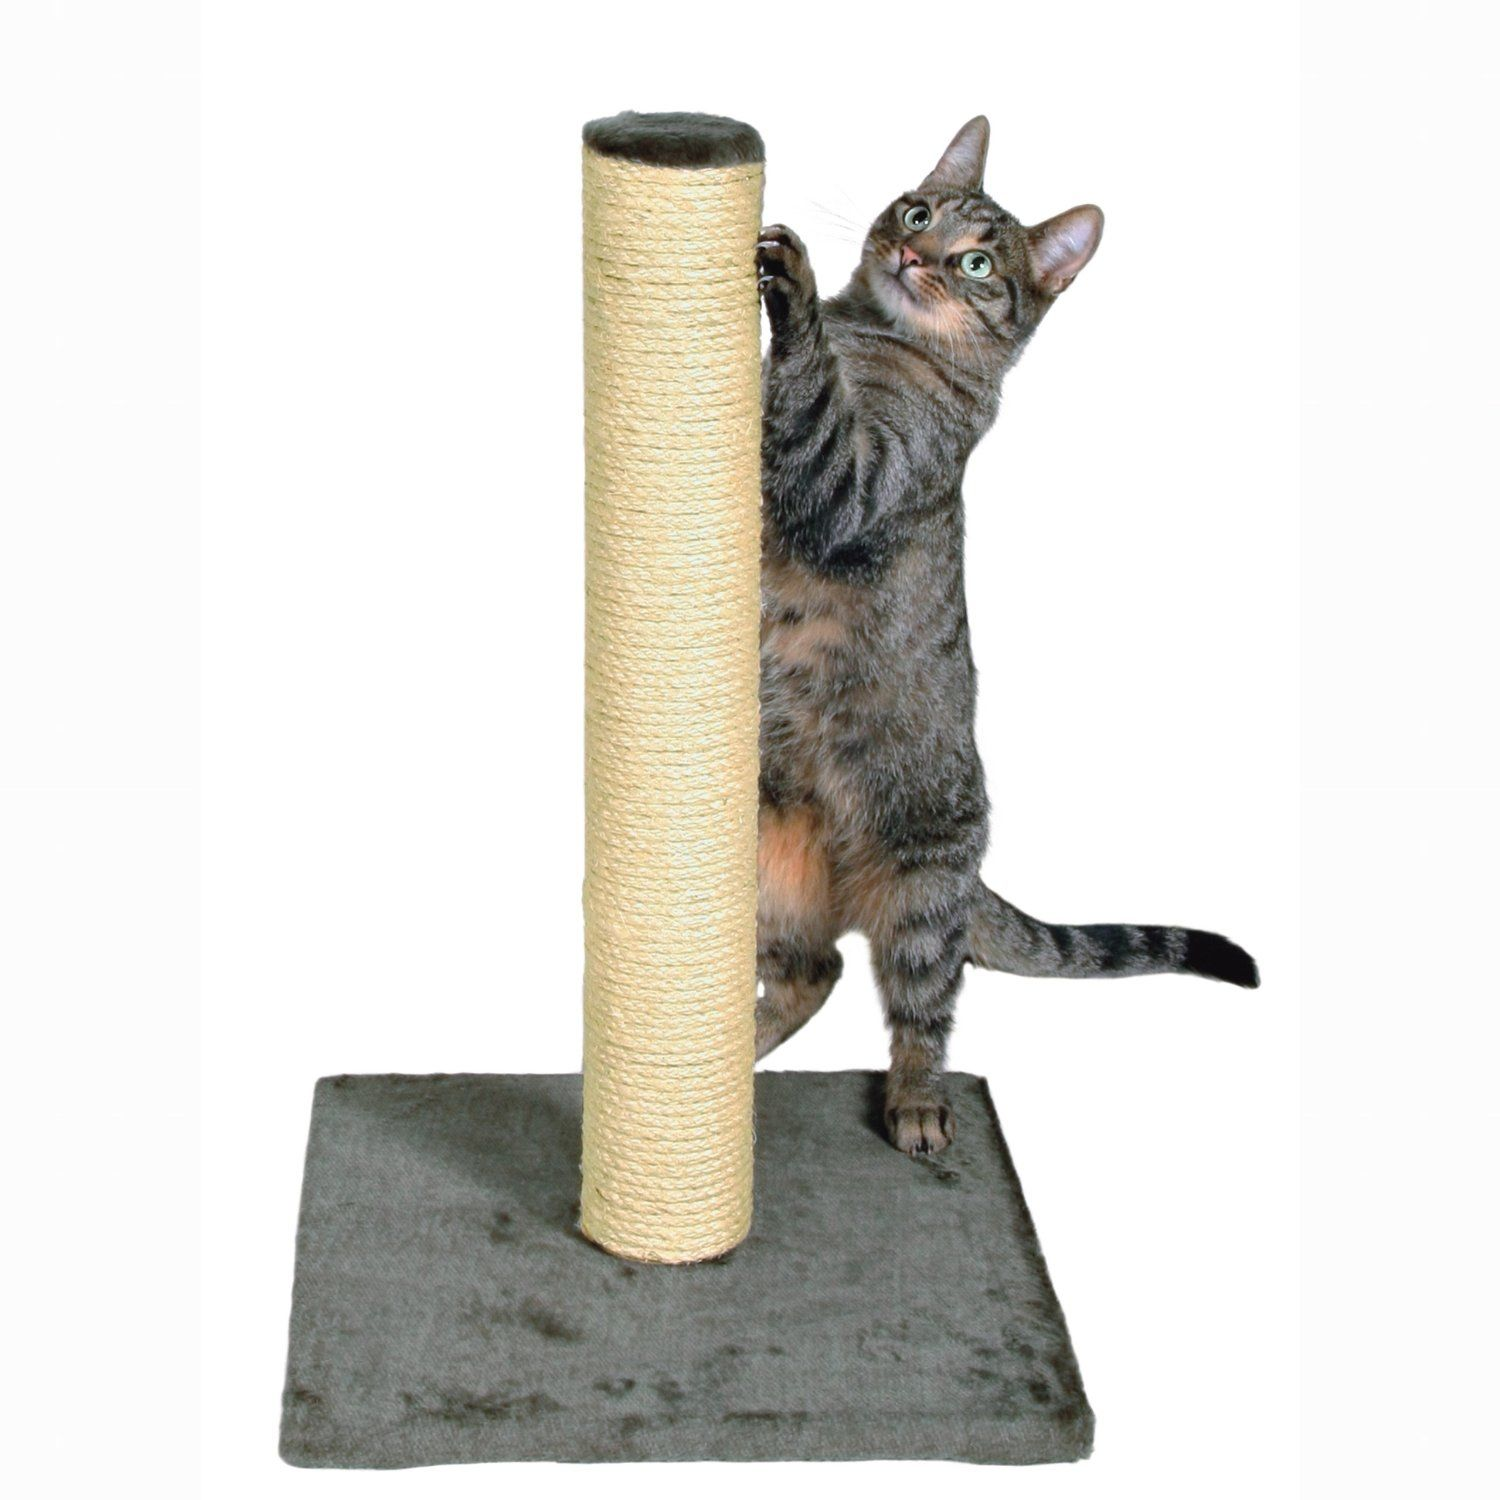 trixie parla scratching post  cat scratching posts  pinterest  -  cm cat scratching post in grey  trixie parla post is wrapped innatural sisal and has a plush cover on the base suitable for cats of allages